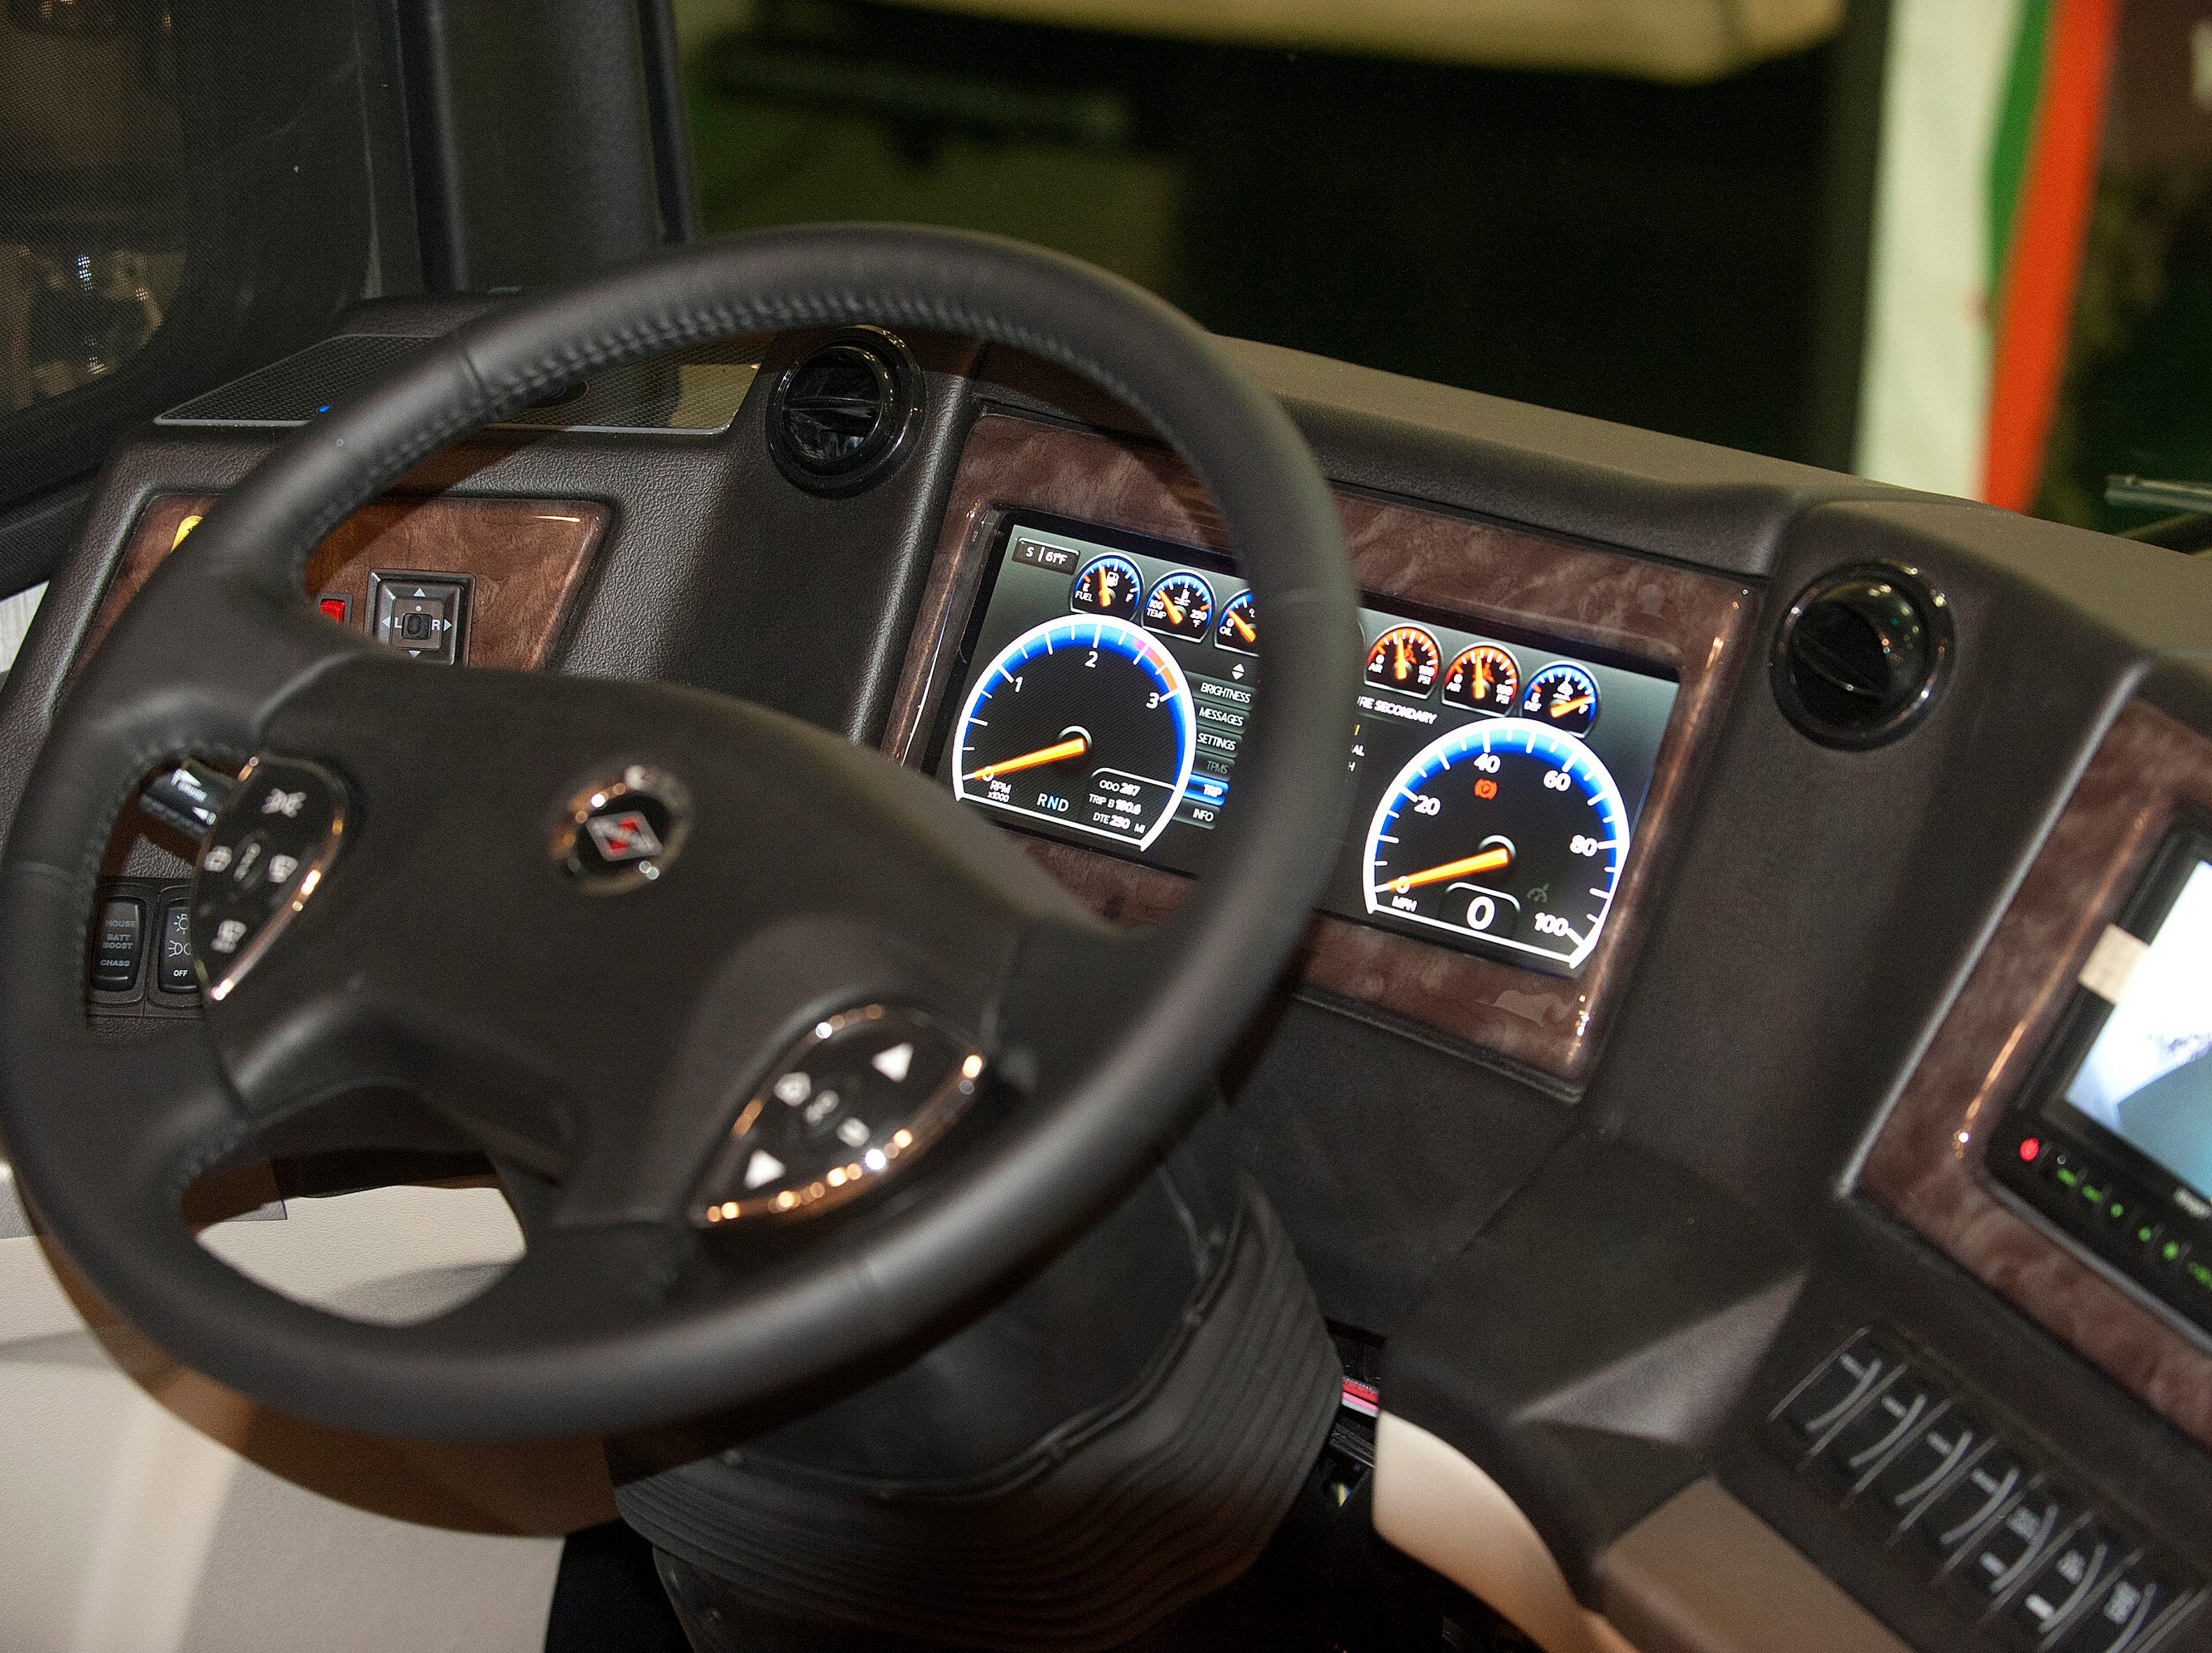 The Dutch Star has a digital dashboard to make viewing the controls easier.11 December 2018